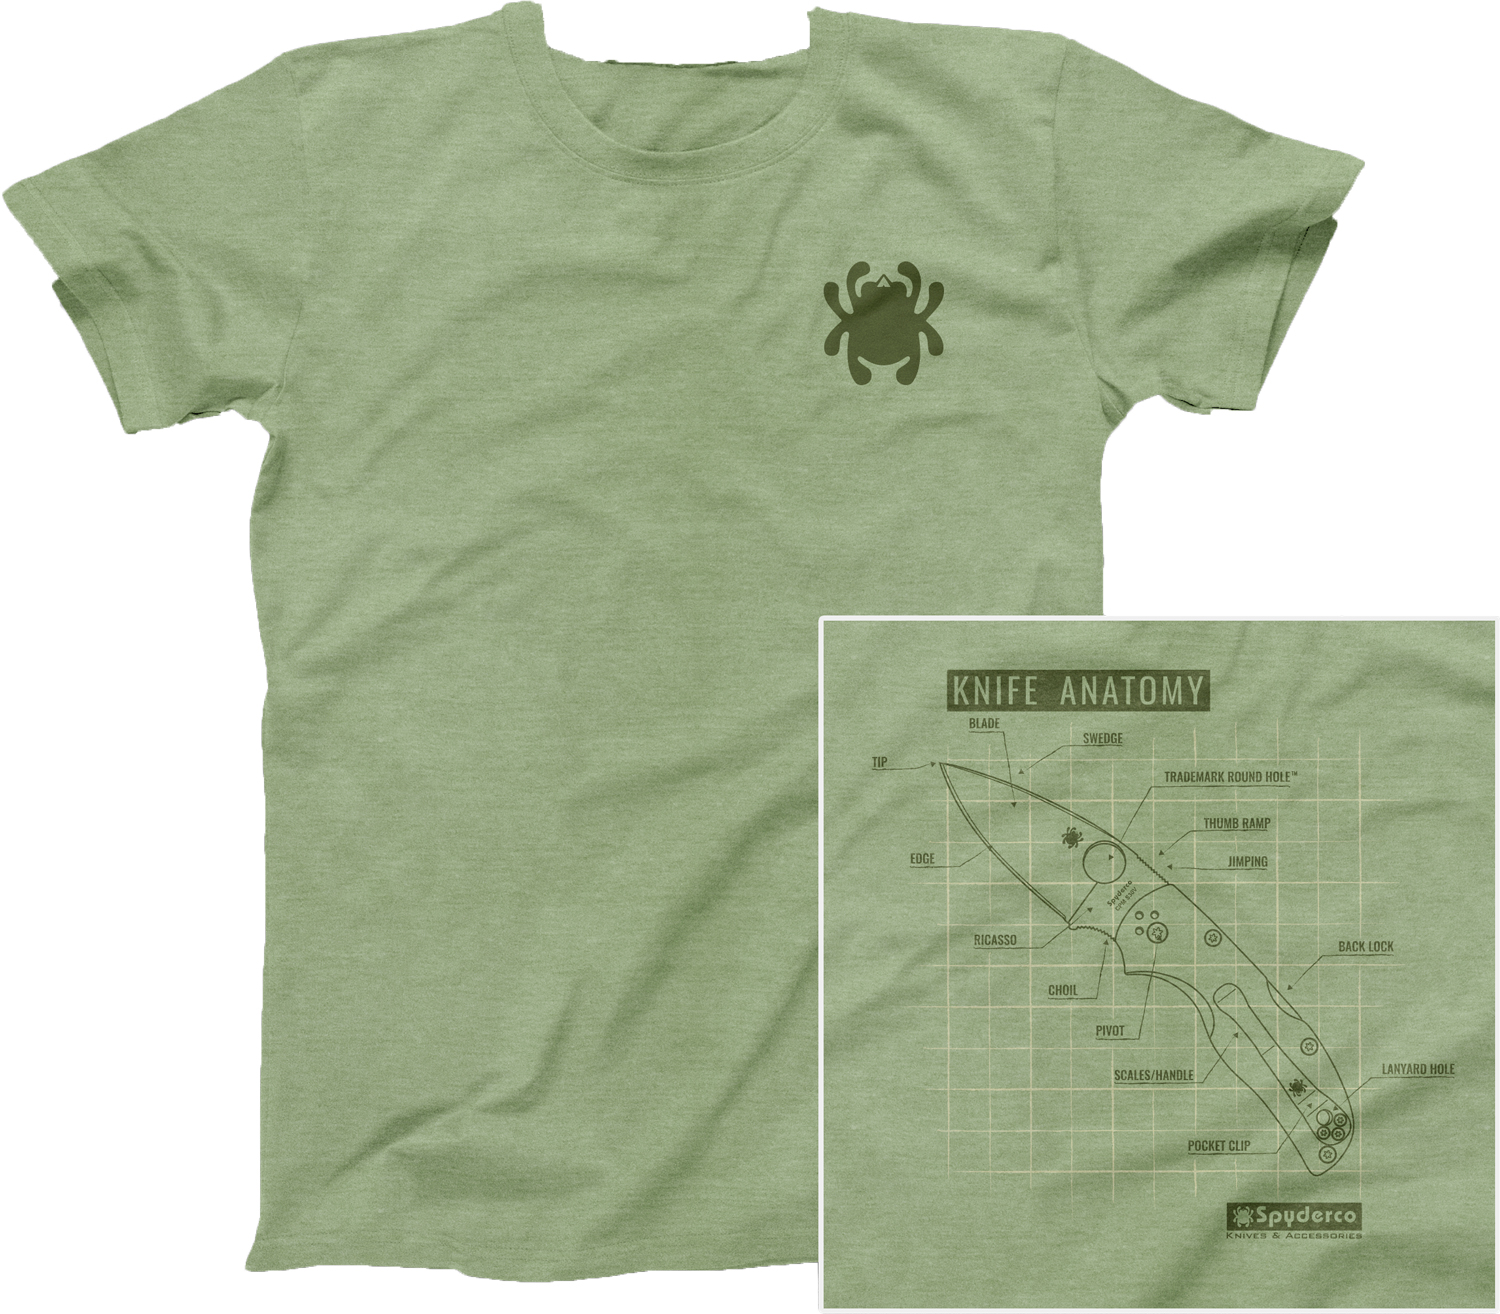 Spyderco Knife Anatomy Unisex T-Shirt, Heather Green, XXL